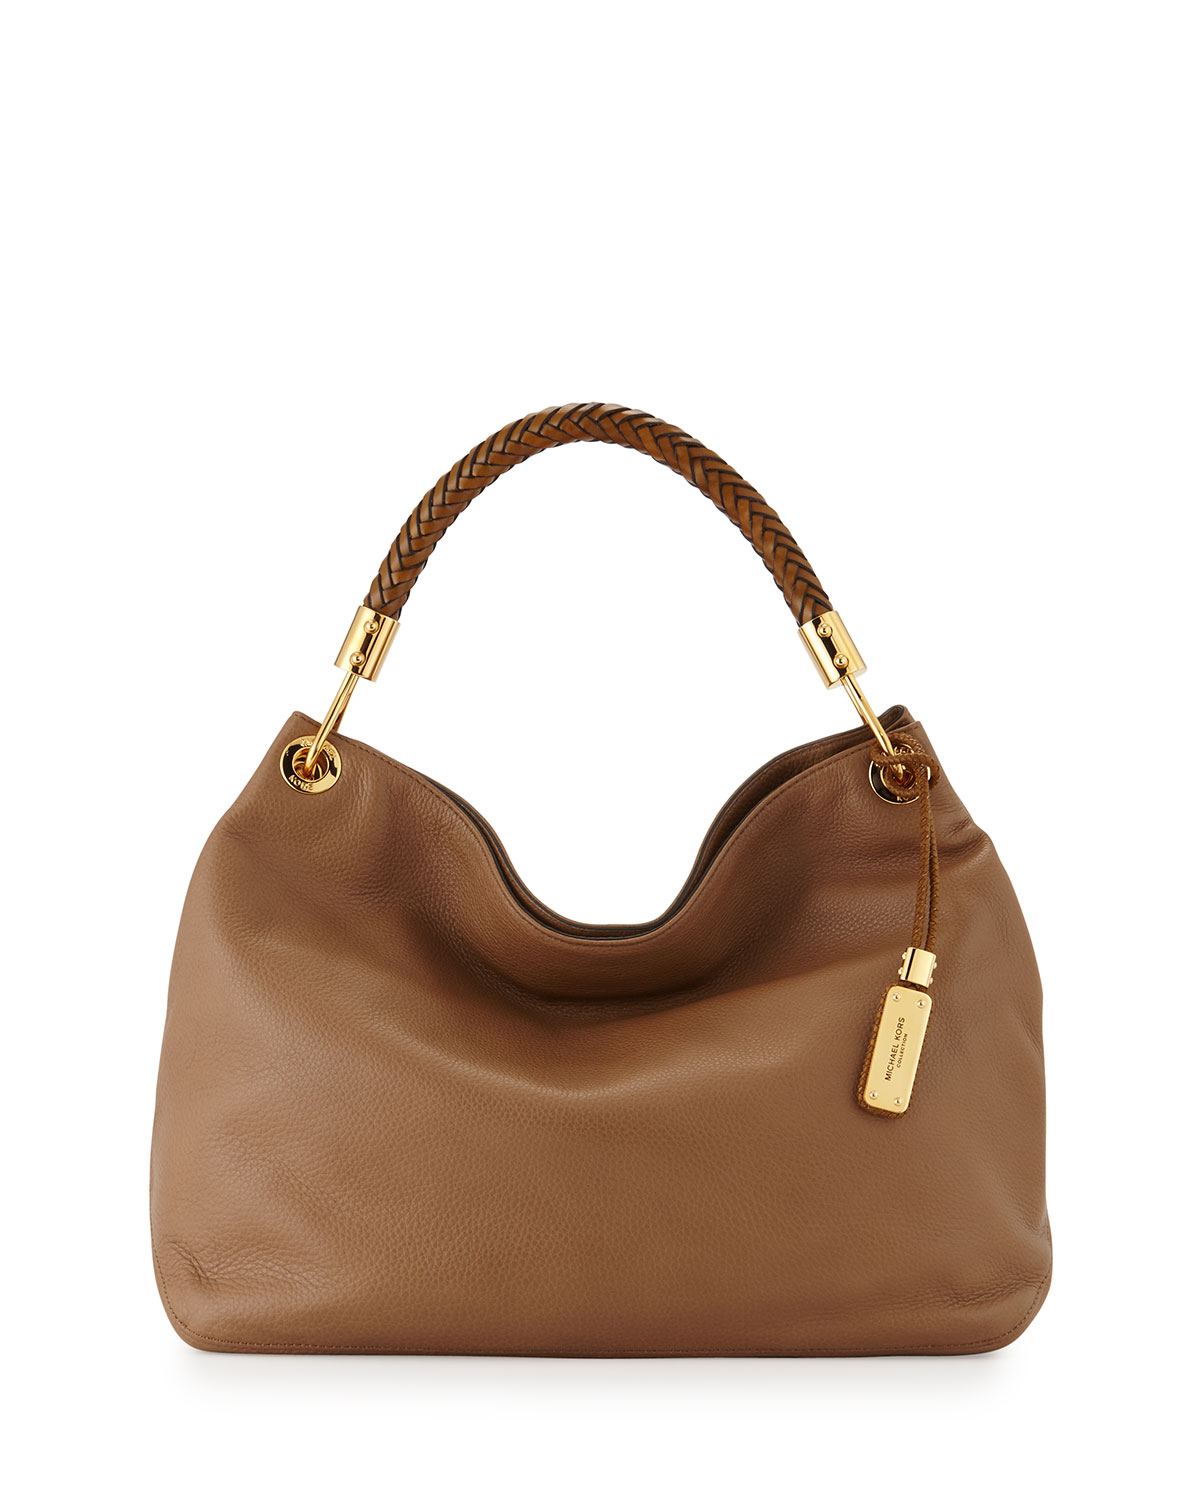 3a2ad4a2943a Michael Kors Large Skorpios Grained Shoulder Bag